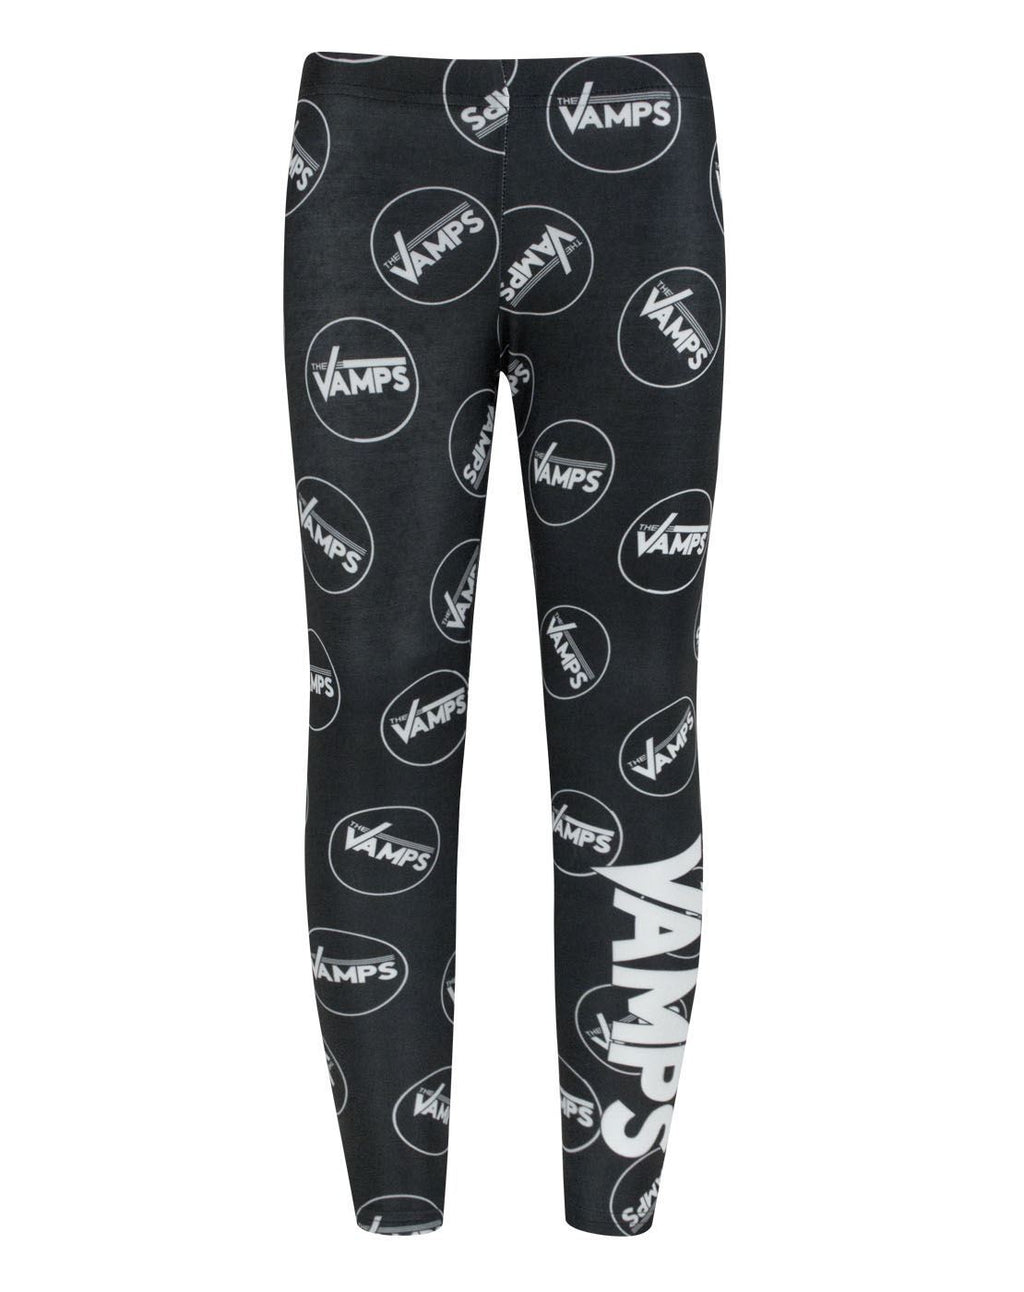 The Vamps Logo Girl's Leggings